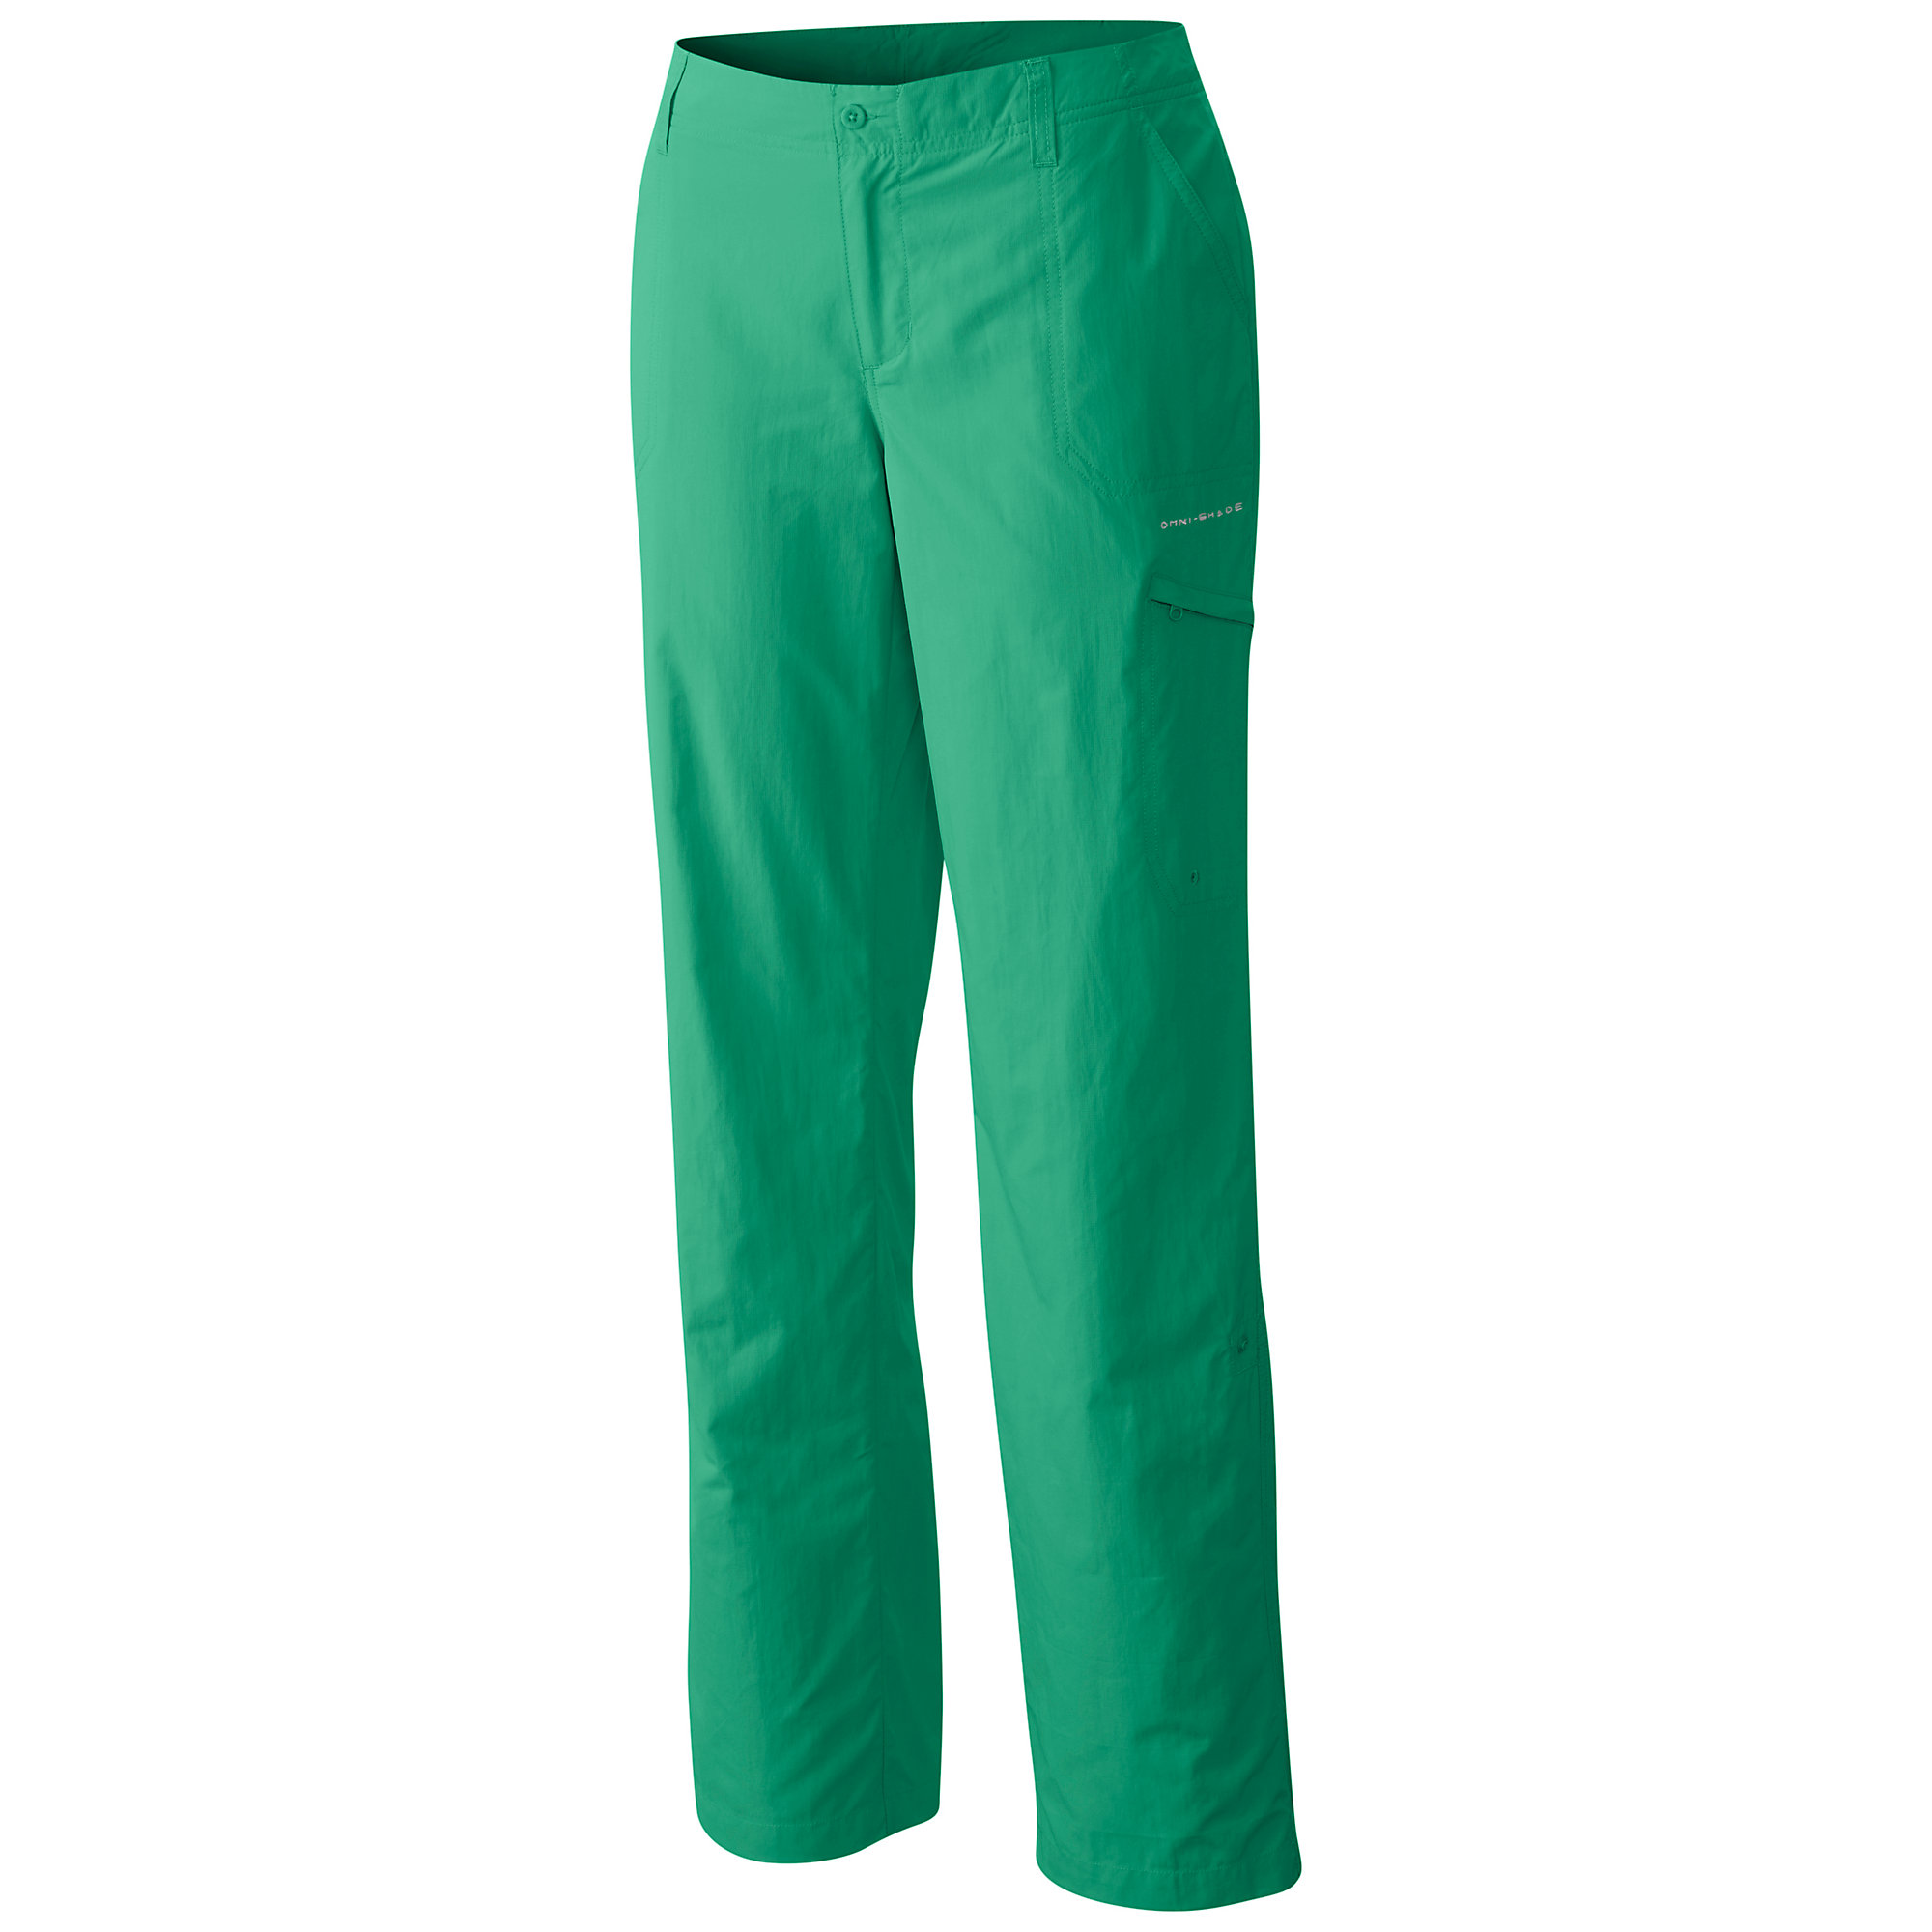 Columbia PFG Aruba Roll Up Pant